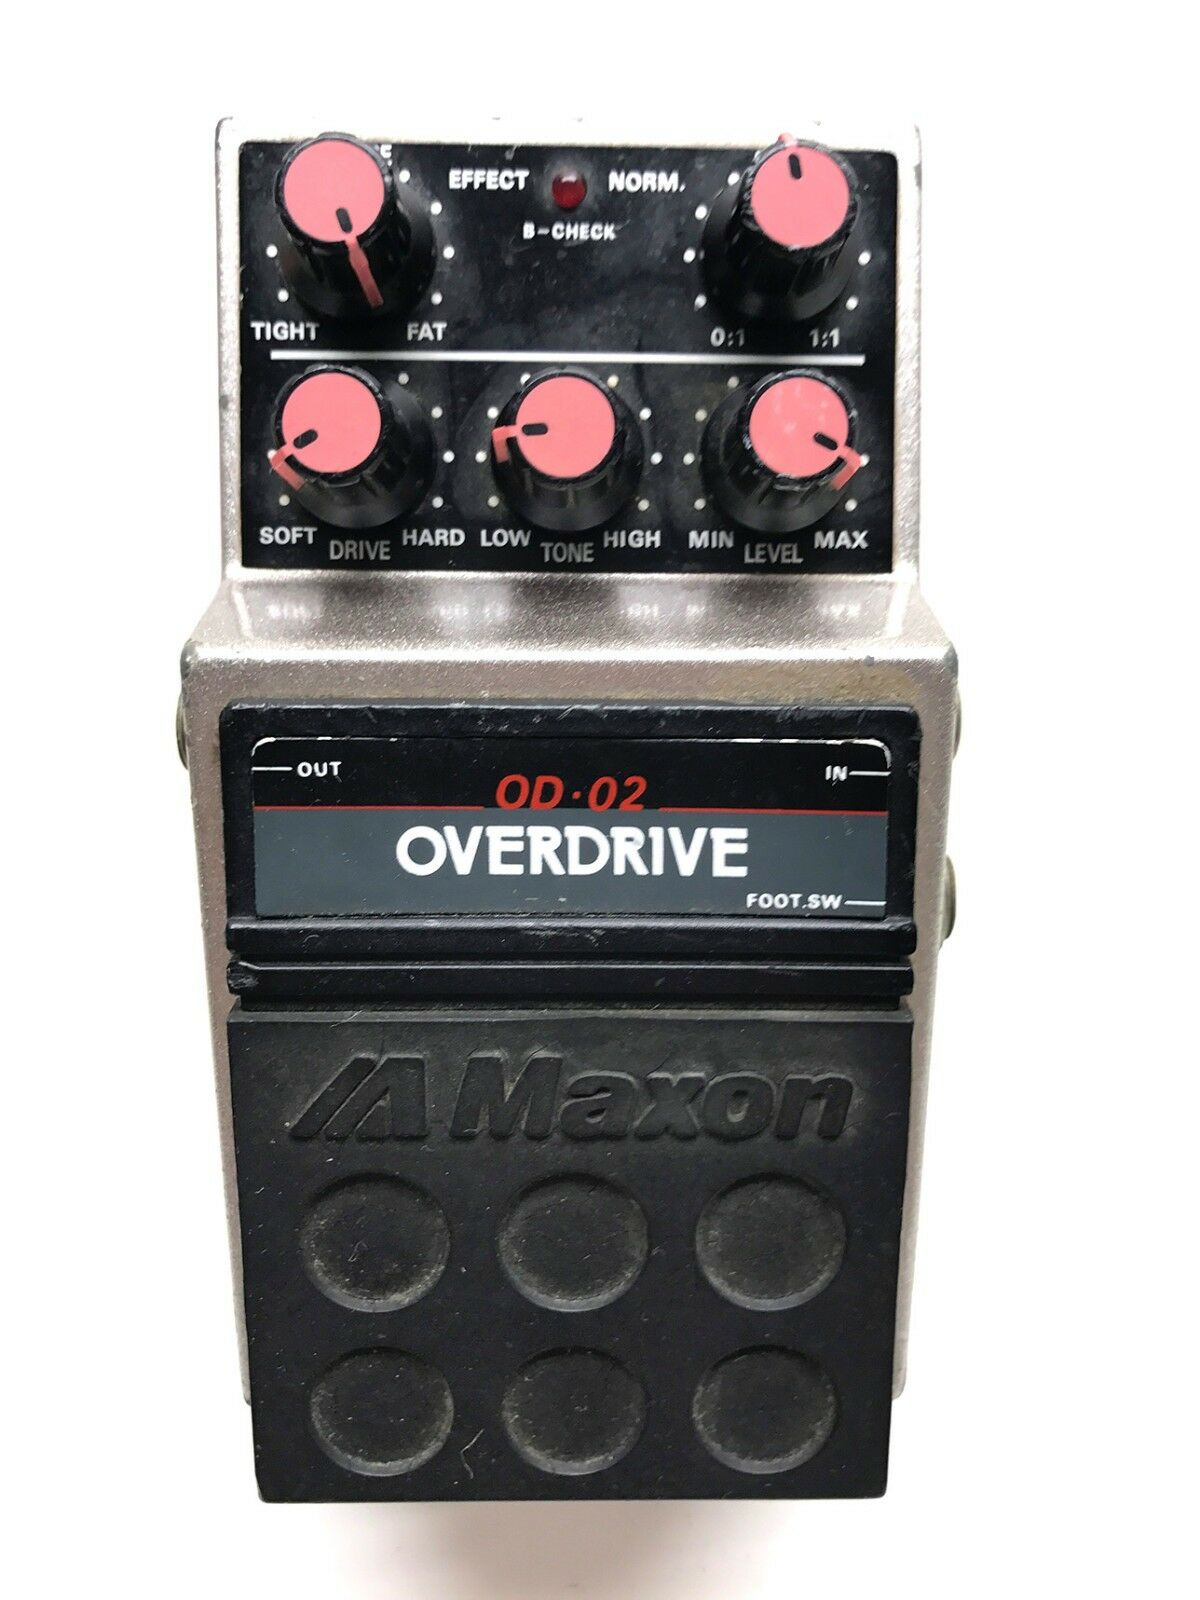 Maxon OD-02, Overdrive, Made In Japan, 1980's, Guitar Effect Pedal